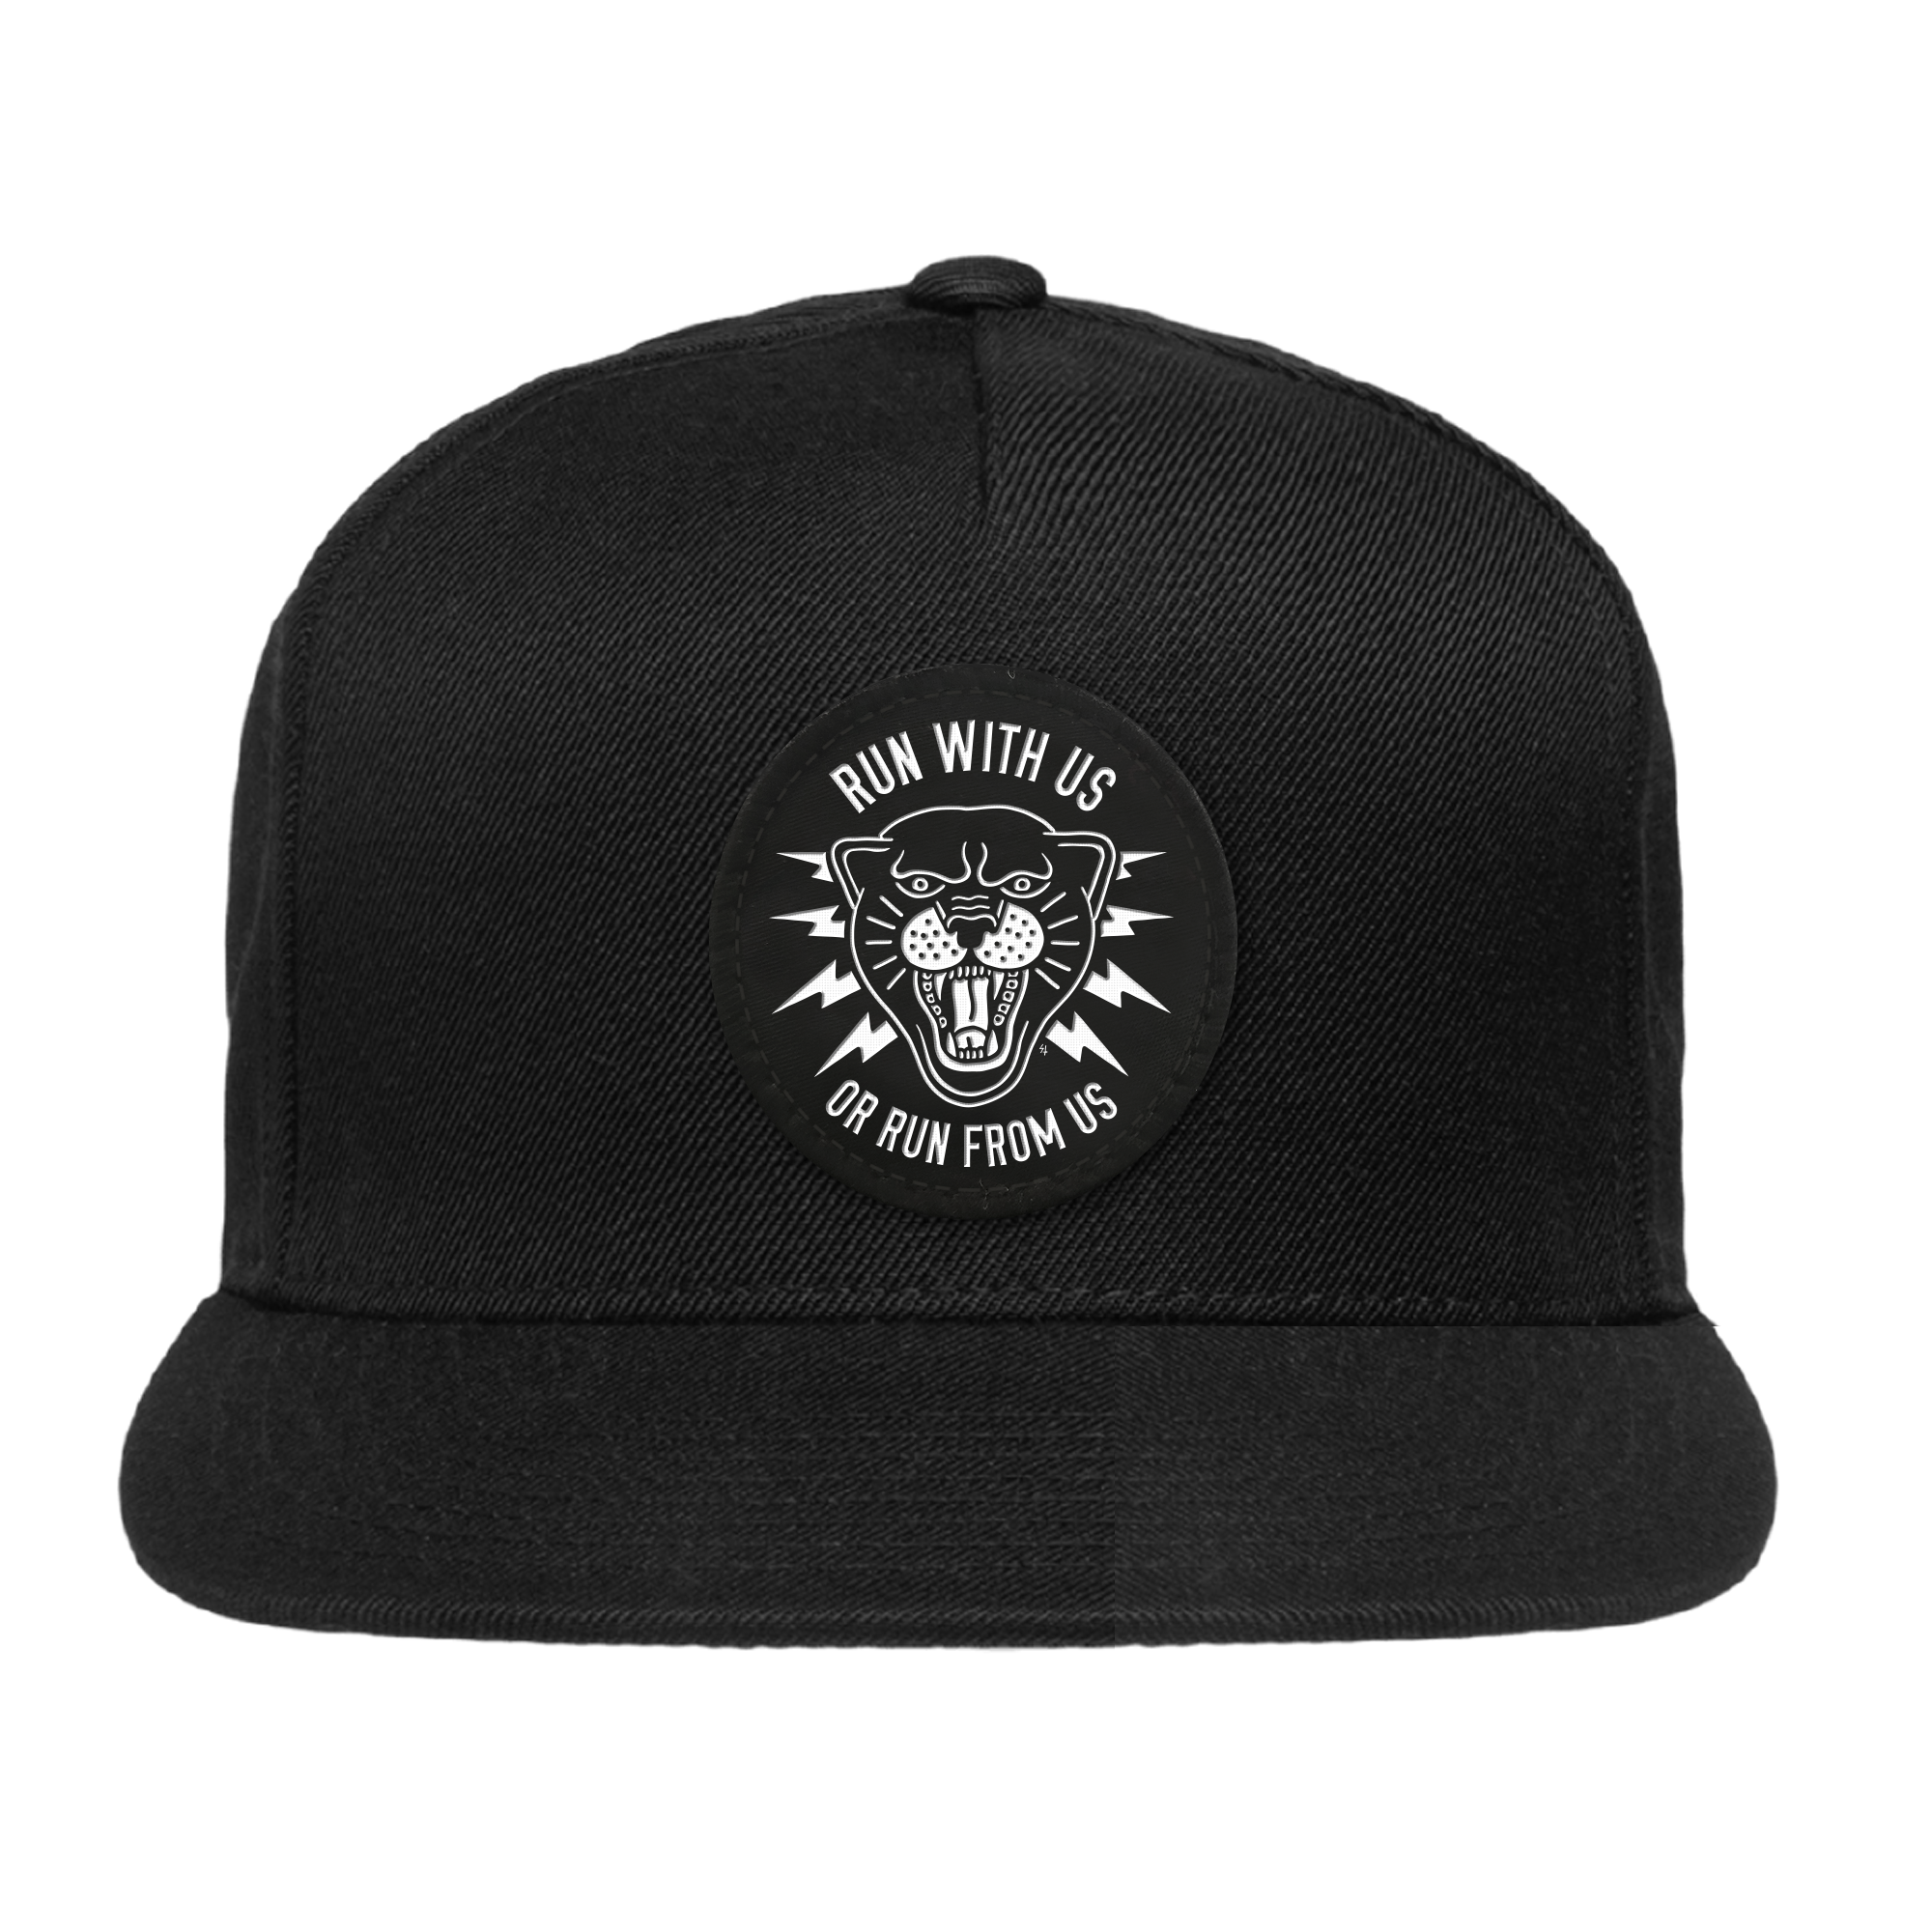 Panther Black Snapback Hat | Lurking Class by Sketchy Tank "|2000|2000|?|False|abe62b8fc56abc8e7ecb1429664c3b98|False|UNLIKELY|0.3180468678474426